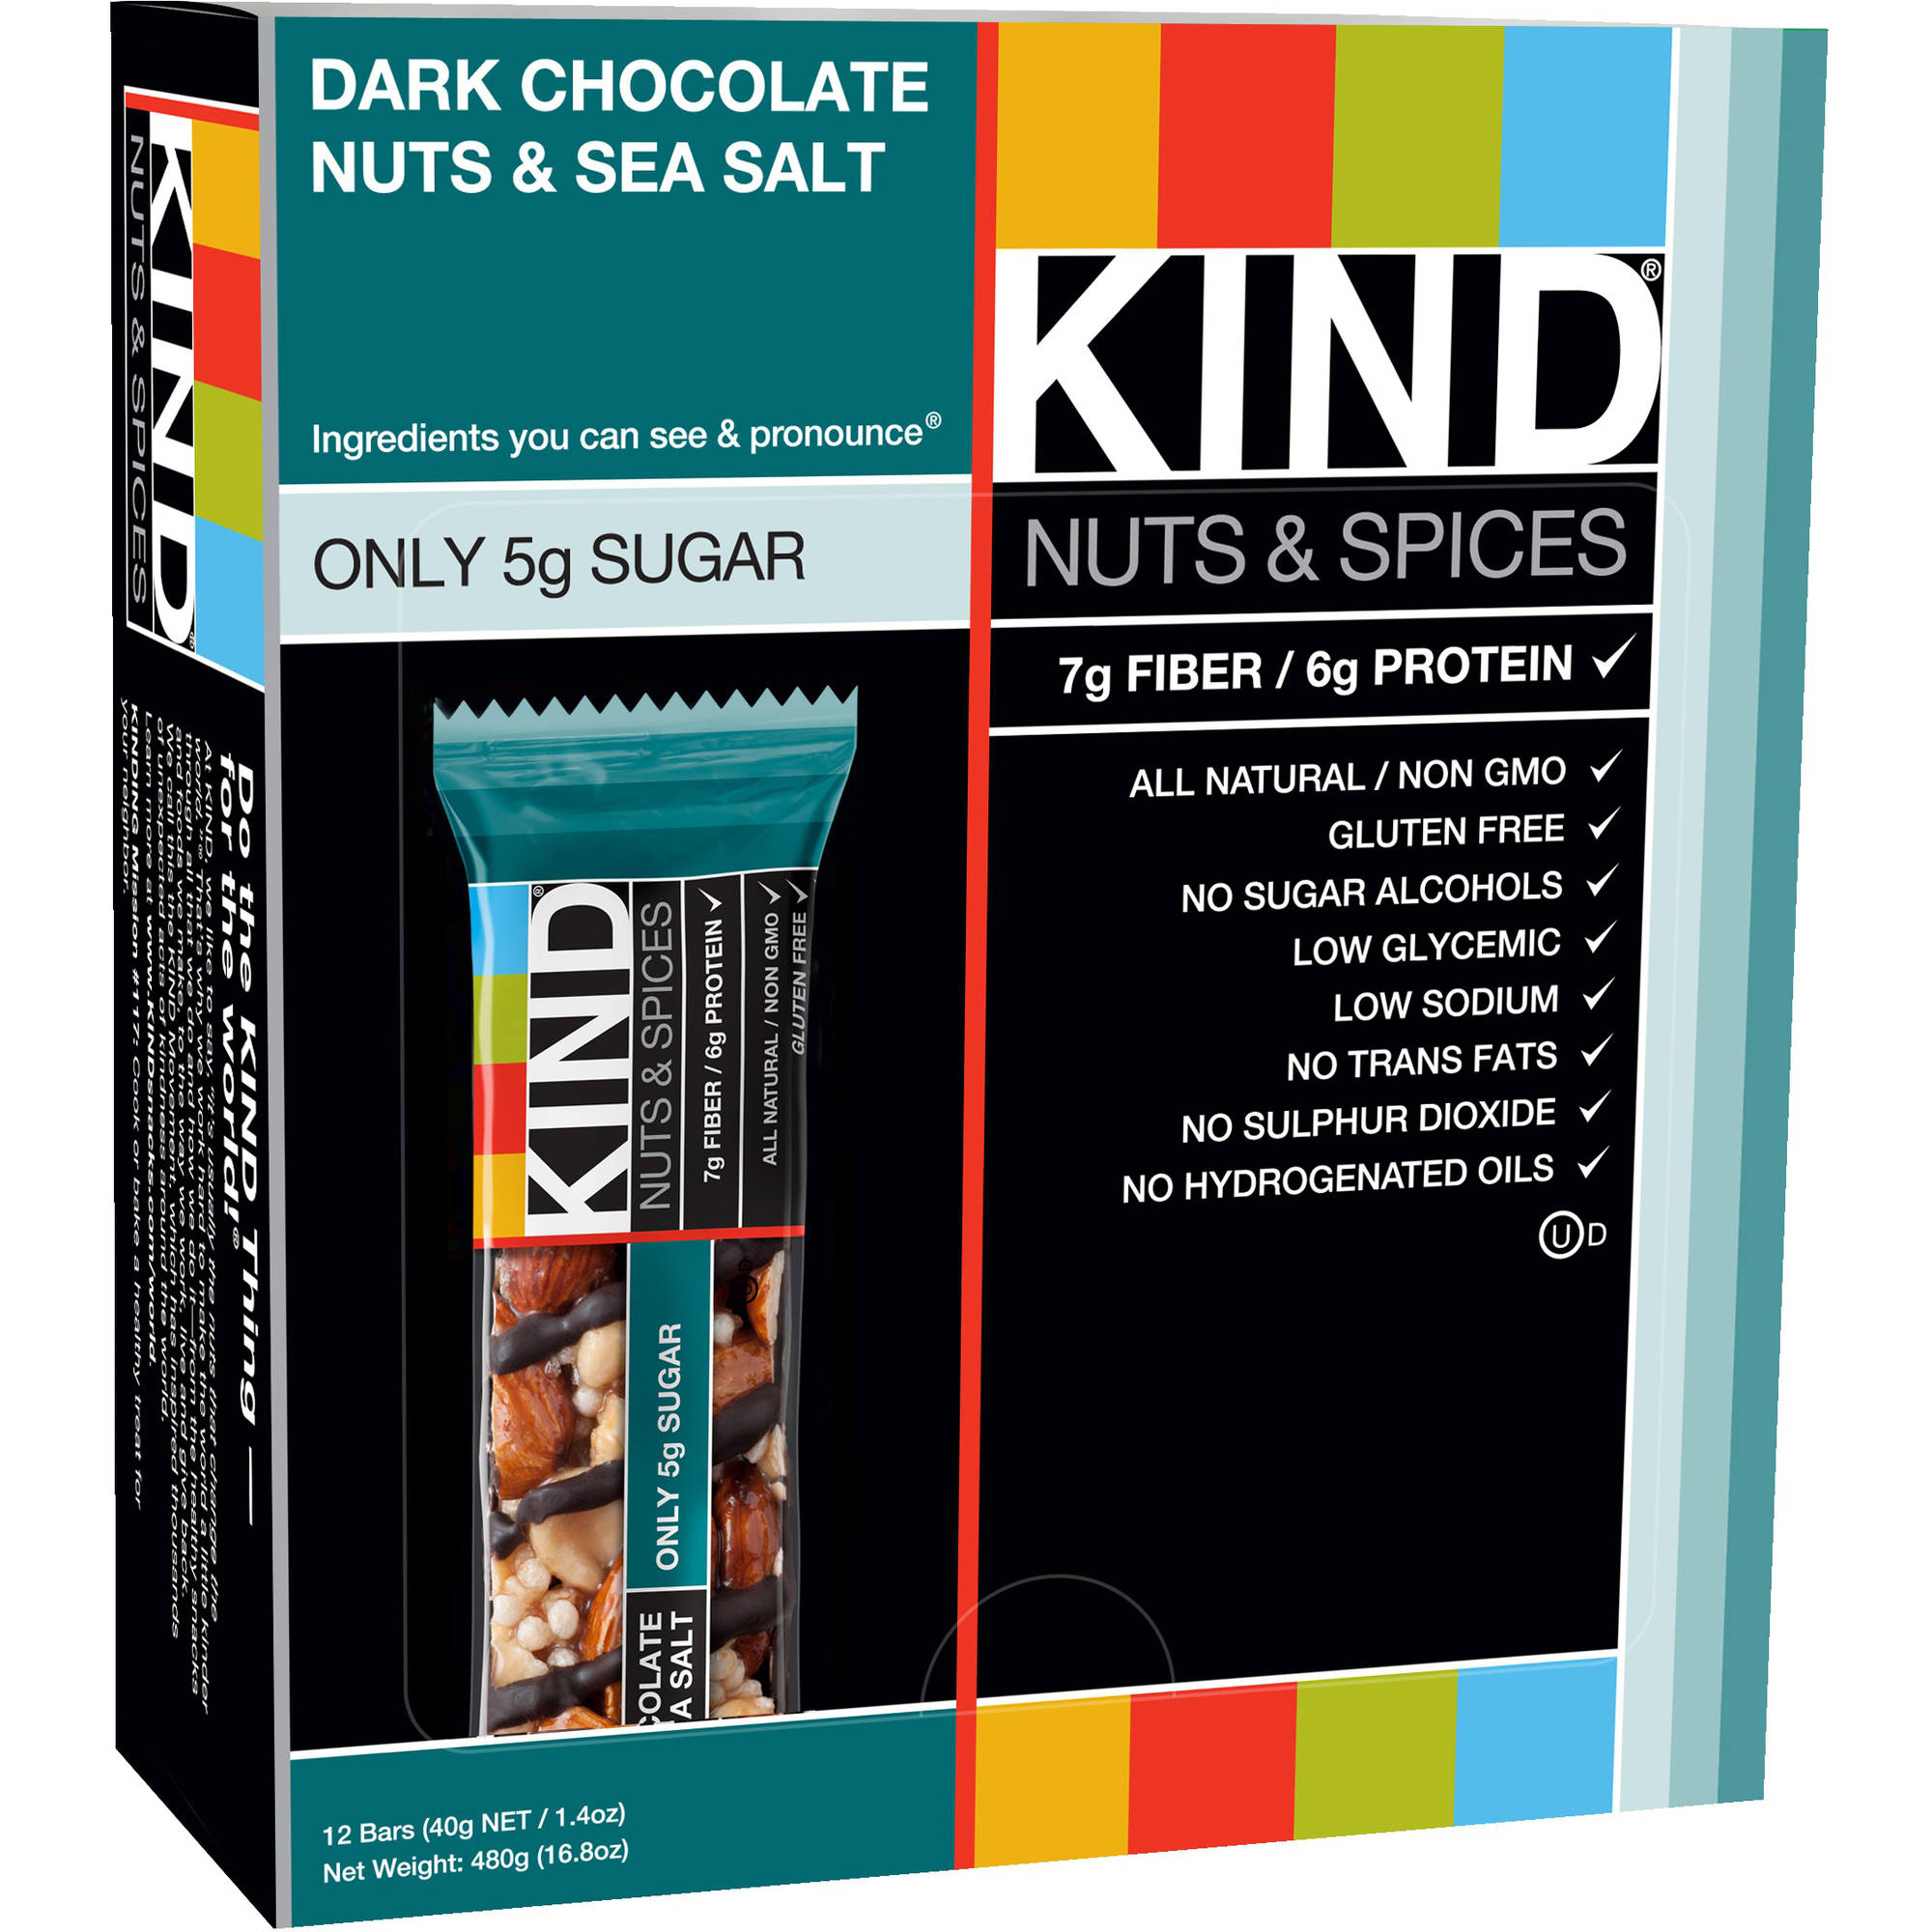 Kind Nuts & Spices Bars Dark Chocolate Nuts & Sea Salt - 12 CT